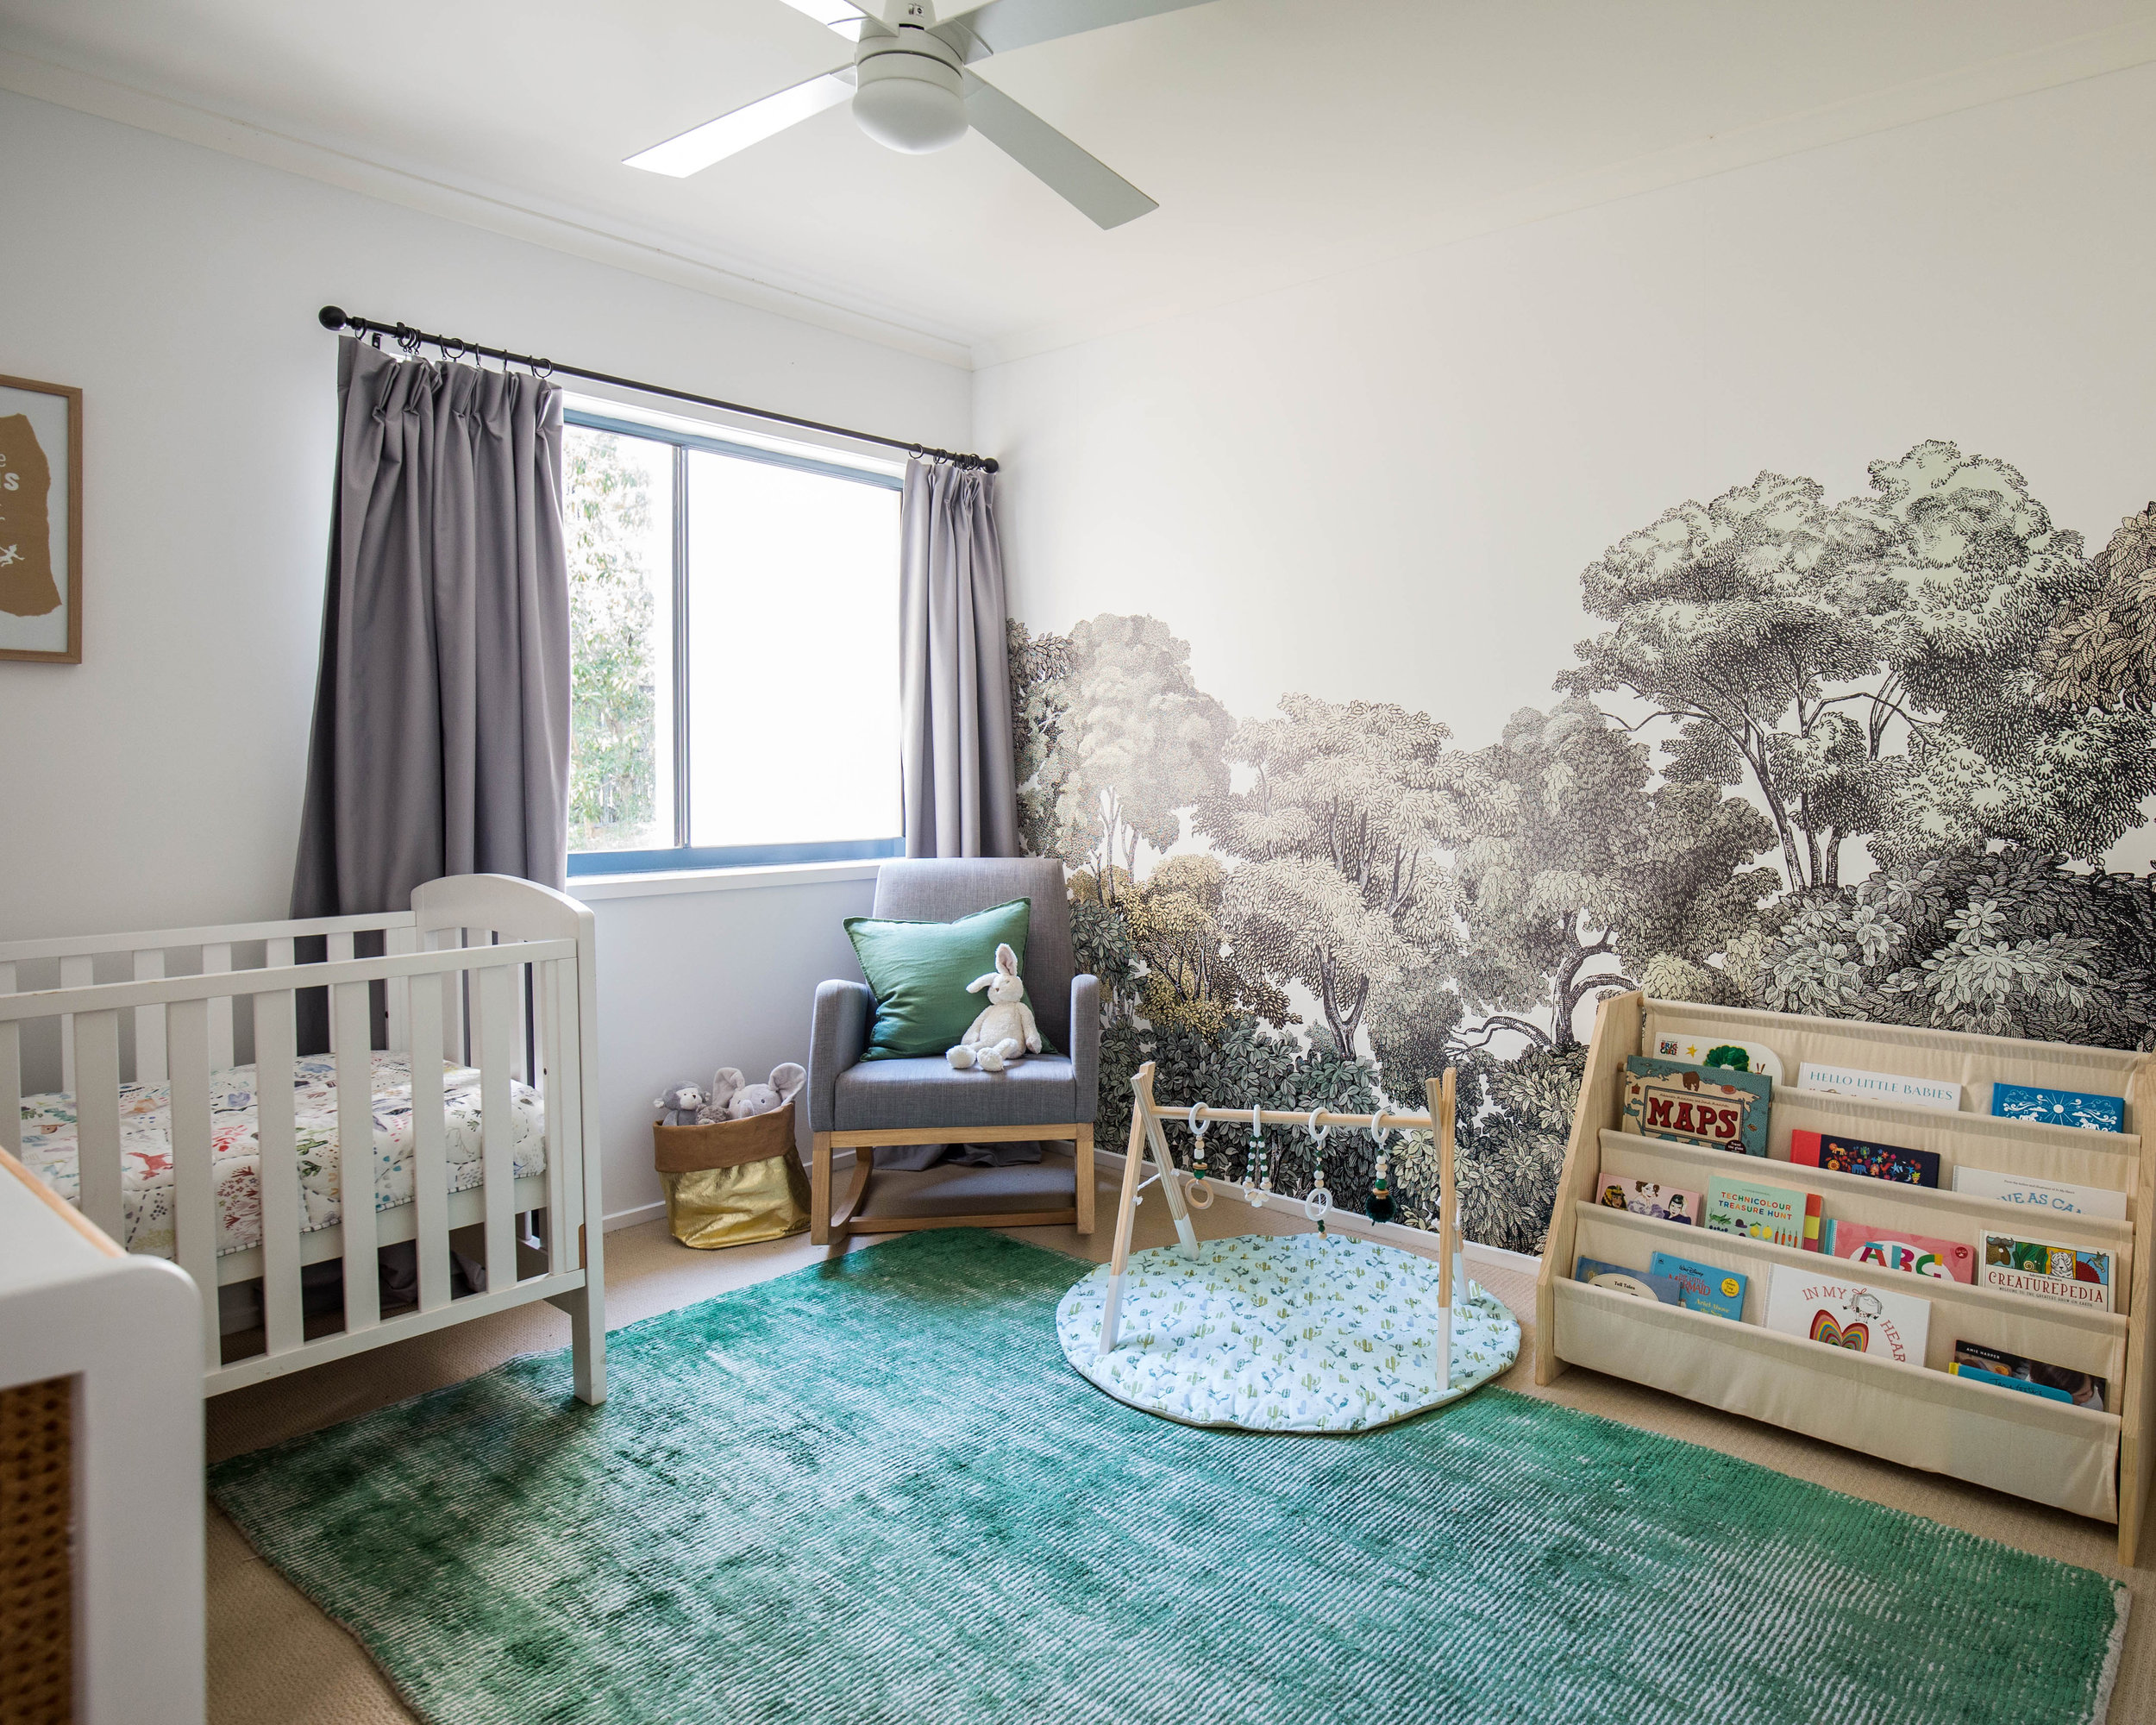 Tanika's Baby Room - Nursery - Interior Design - Tanika Blair Stying & Photography - IMG_9036.jpg